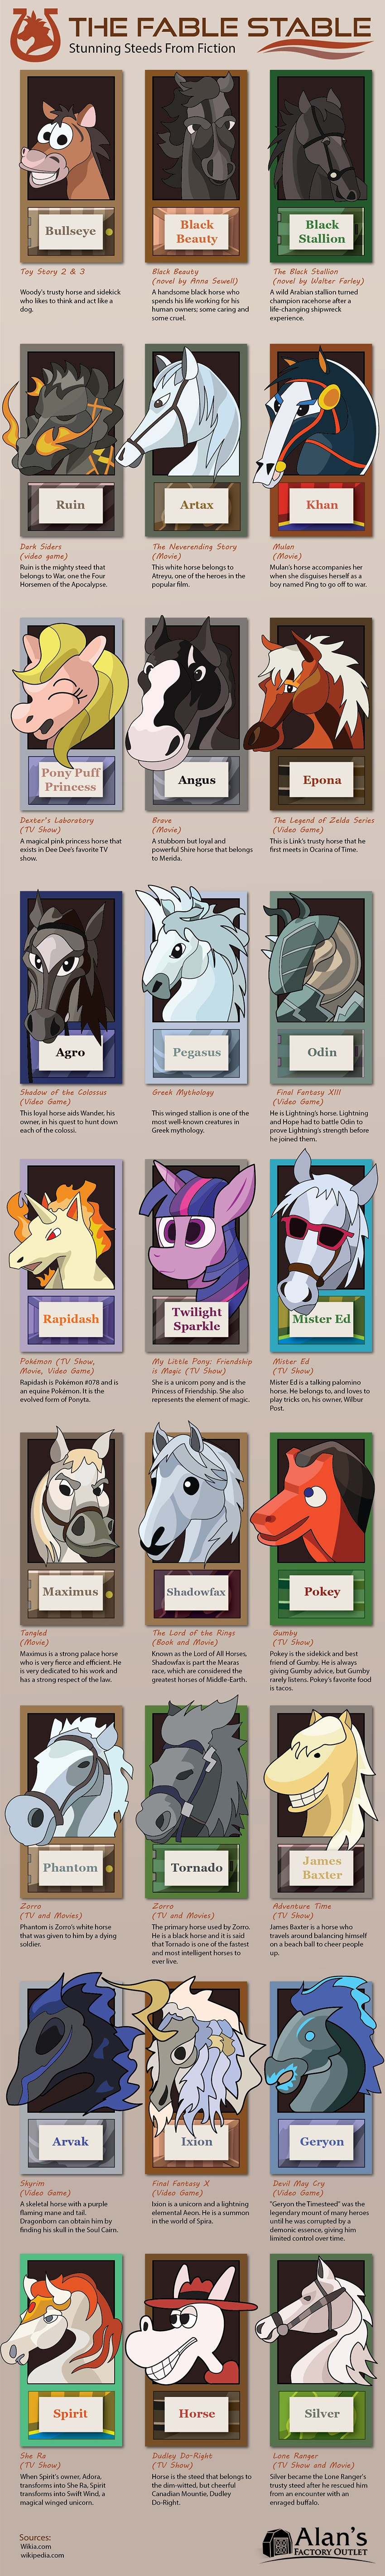 horse infographic